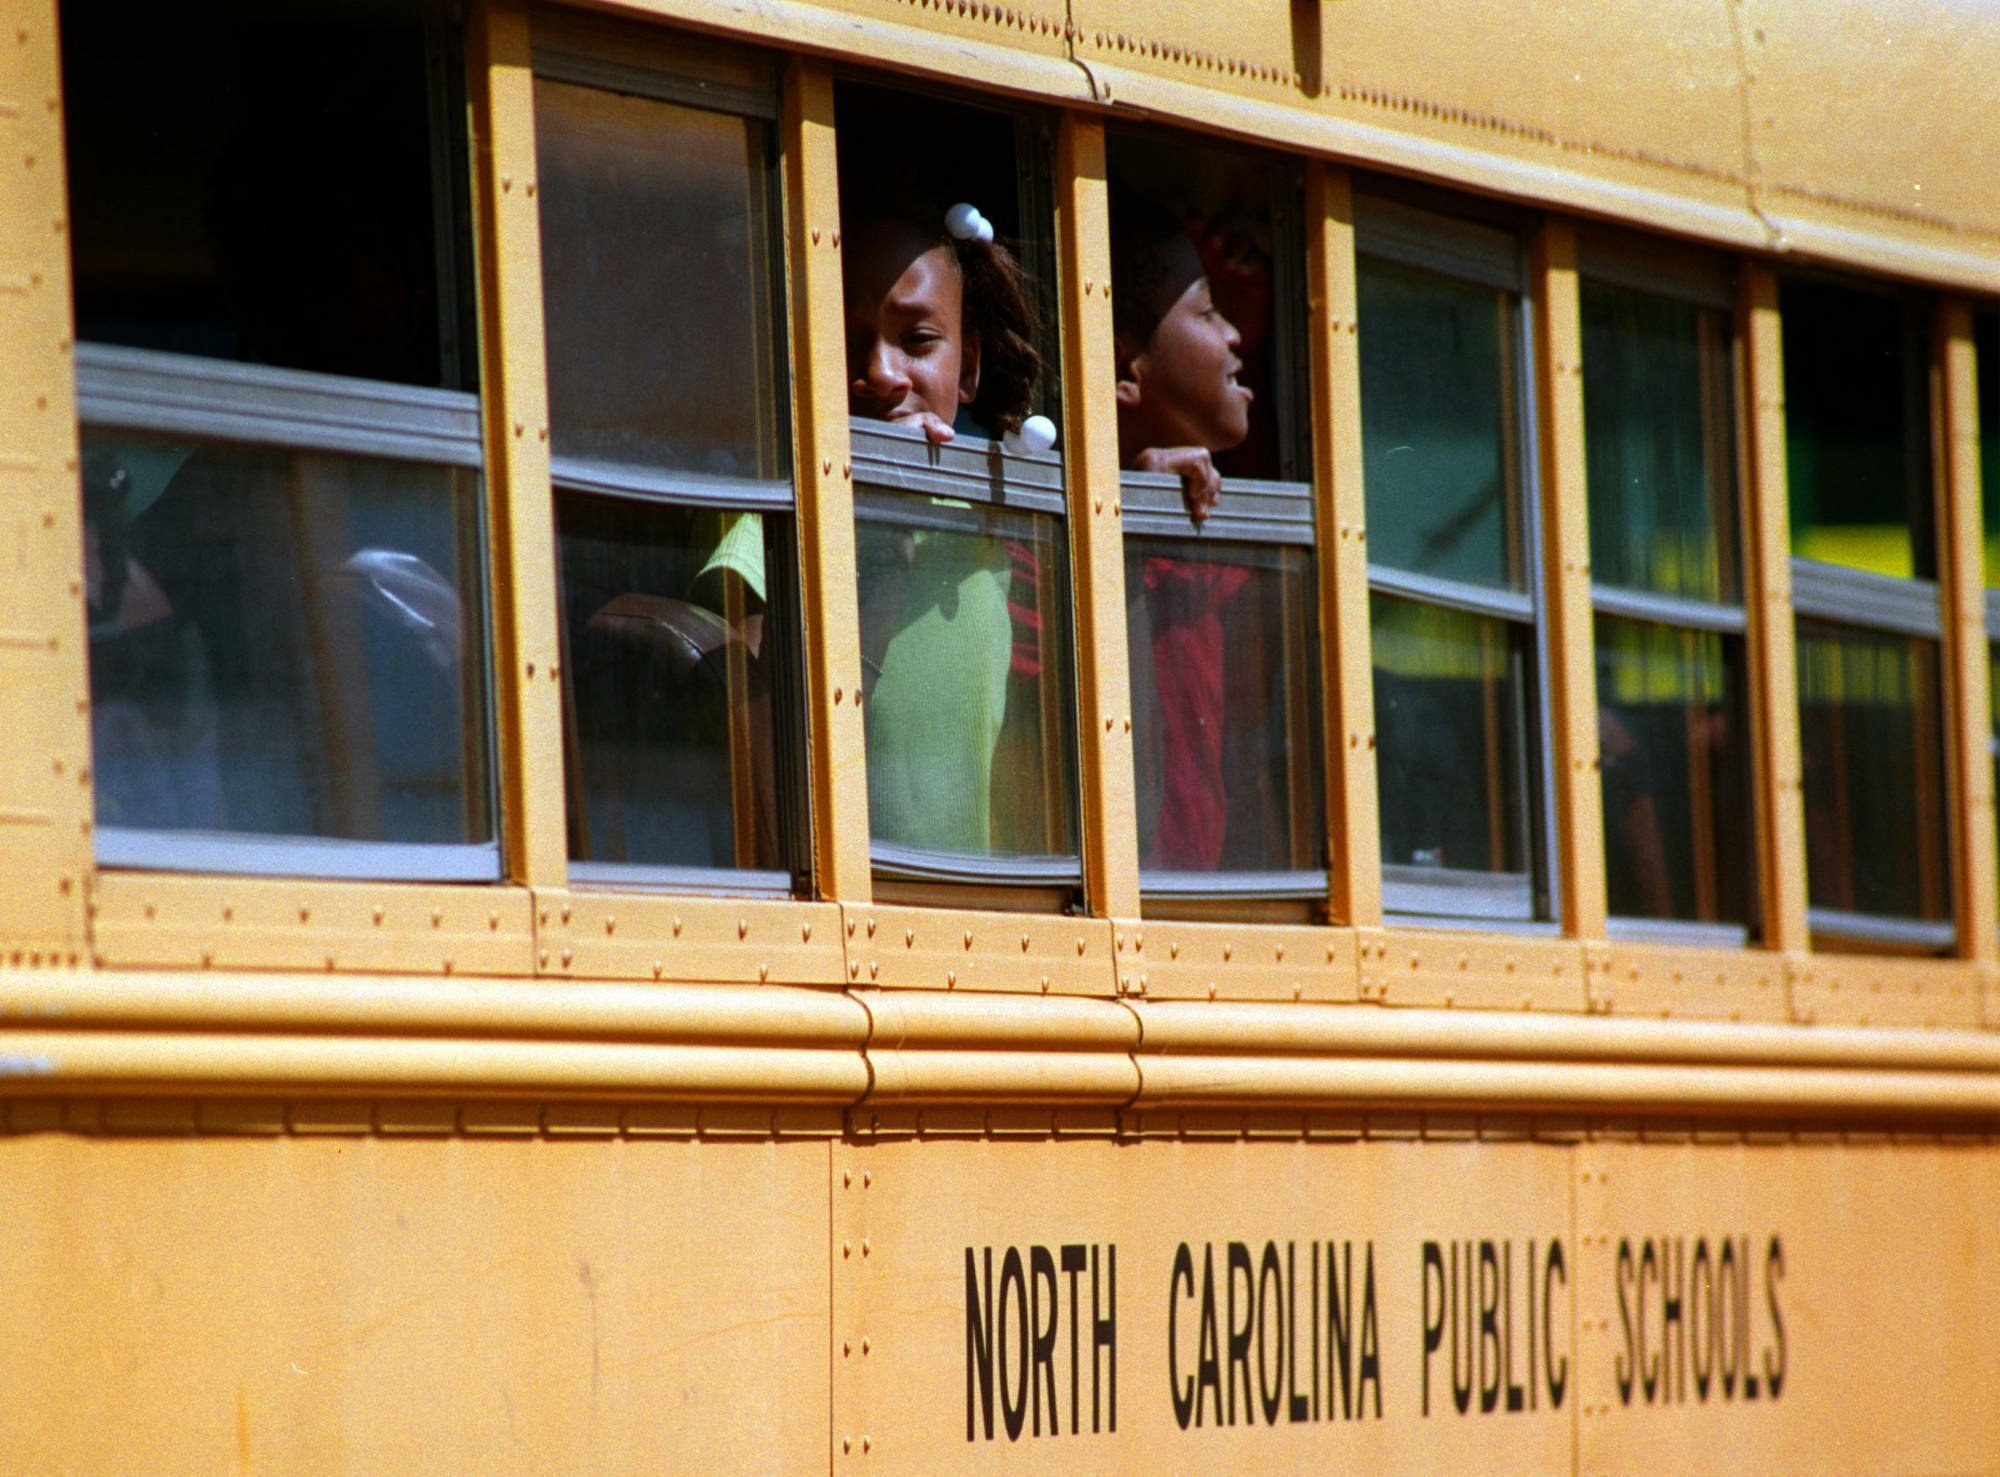 Schoolchildren in Huntersville, N.C., a suburb of Charlotte, in 1999. Two years later, a court order ended a comprehensive desegregration plan in the Charlotte school district that included busing. (Todd Sumlin/The Charlotte Observer)